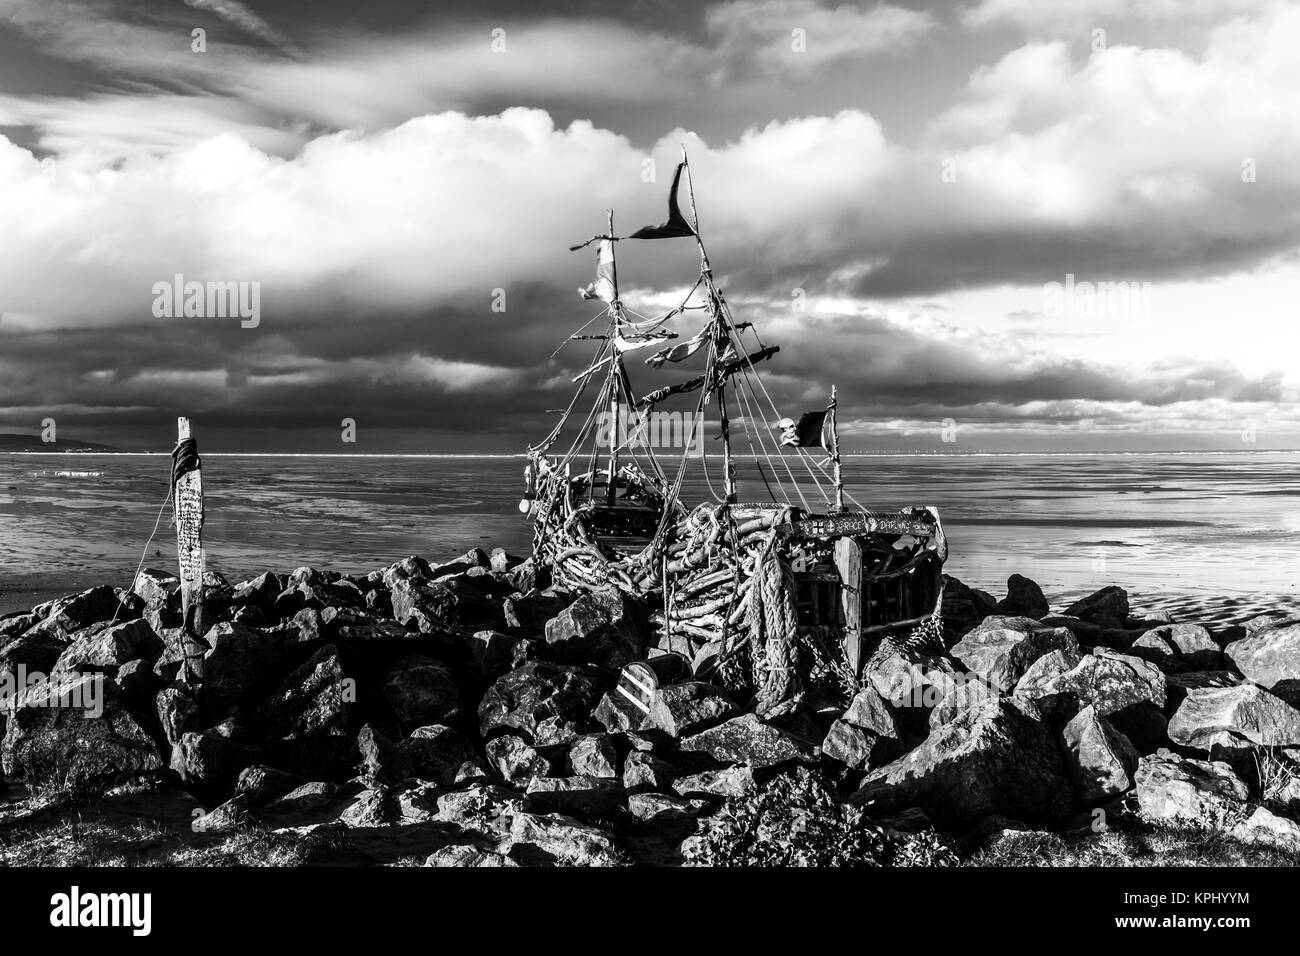 The 'Grace Darling' made from driftwood and scrap materials near Hoylake lifeboat station, Wirral, UK - Stock Image